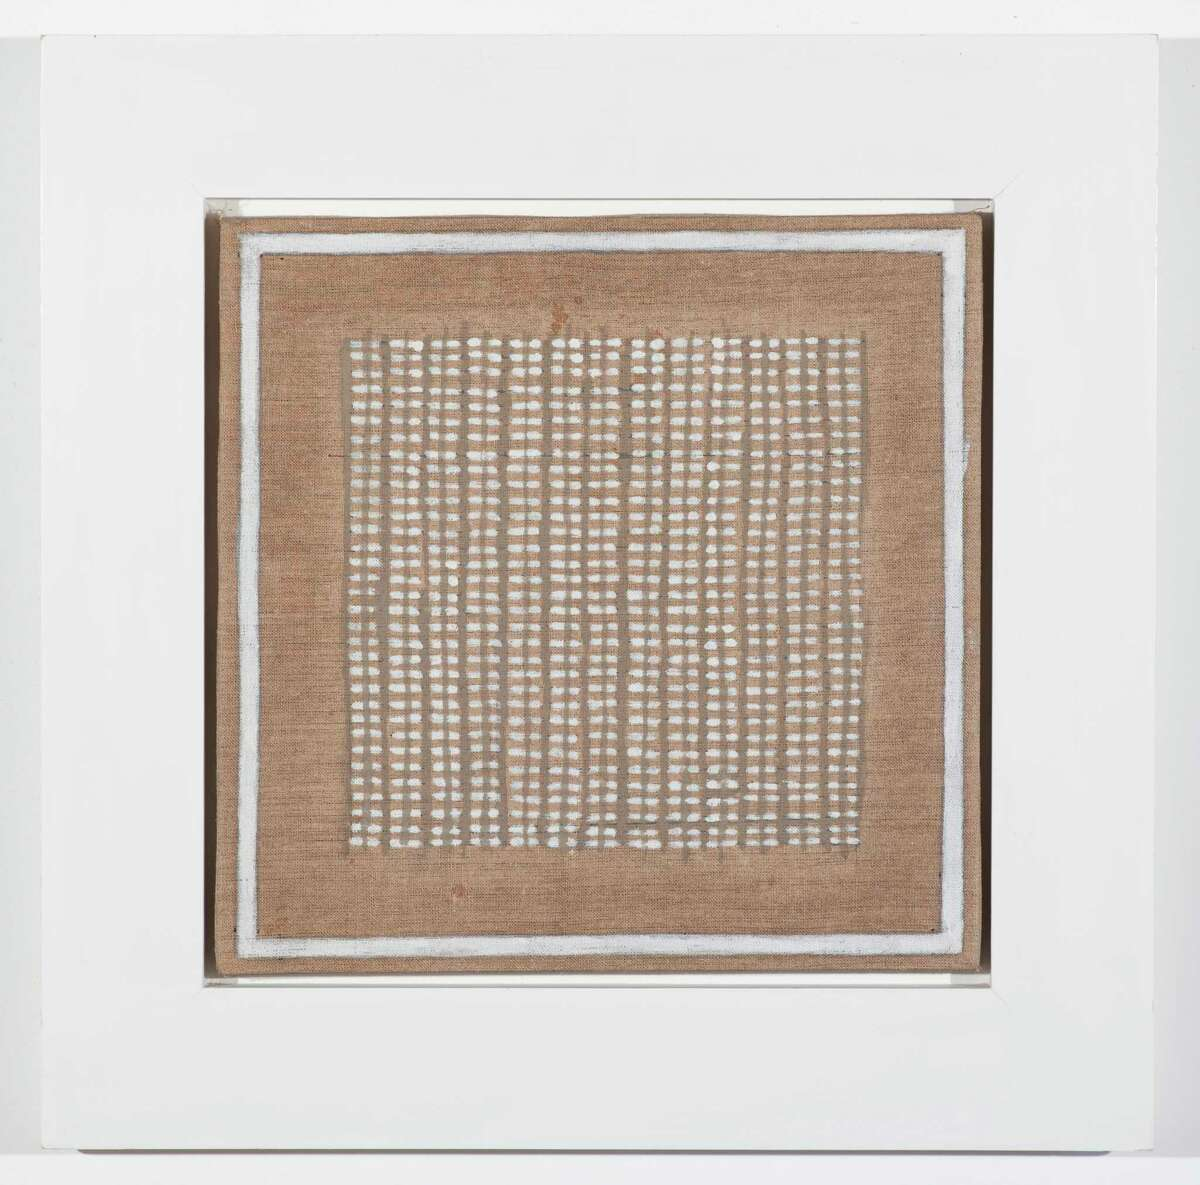 [PG2015_1_102] Agnes Martin, Island No. 1, 1960. Oil on linen, 12 é?- 12 in. (30.5 é?- 30.5 cm). Private Collection, Houston. Agnes Martin / Artists Rights Society (ARS), New York